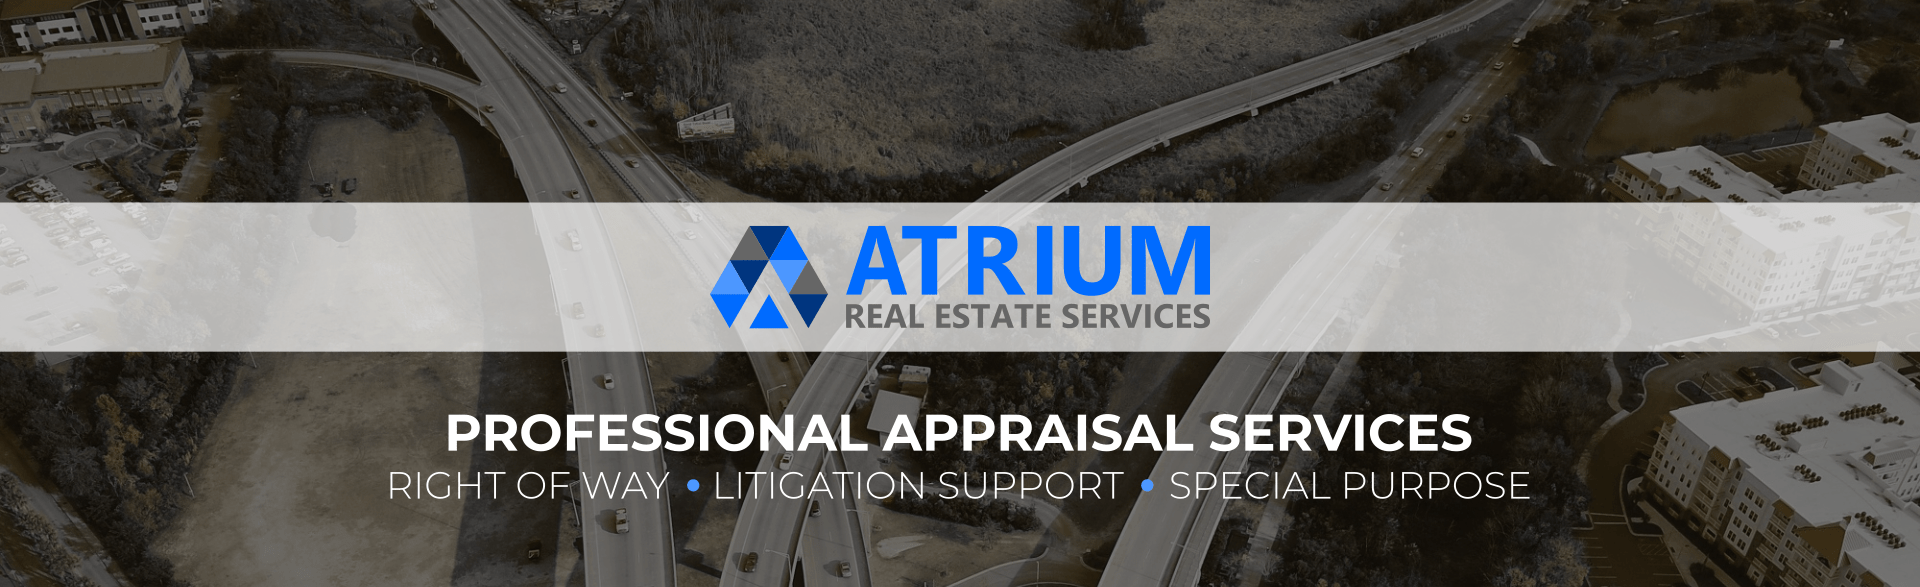 Atrium Real Estate Services provides right of way appraisal, appraisal review, expert witness testimony, eminent domain and real estate appraisal services in Texas.